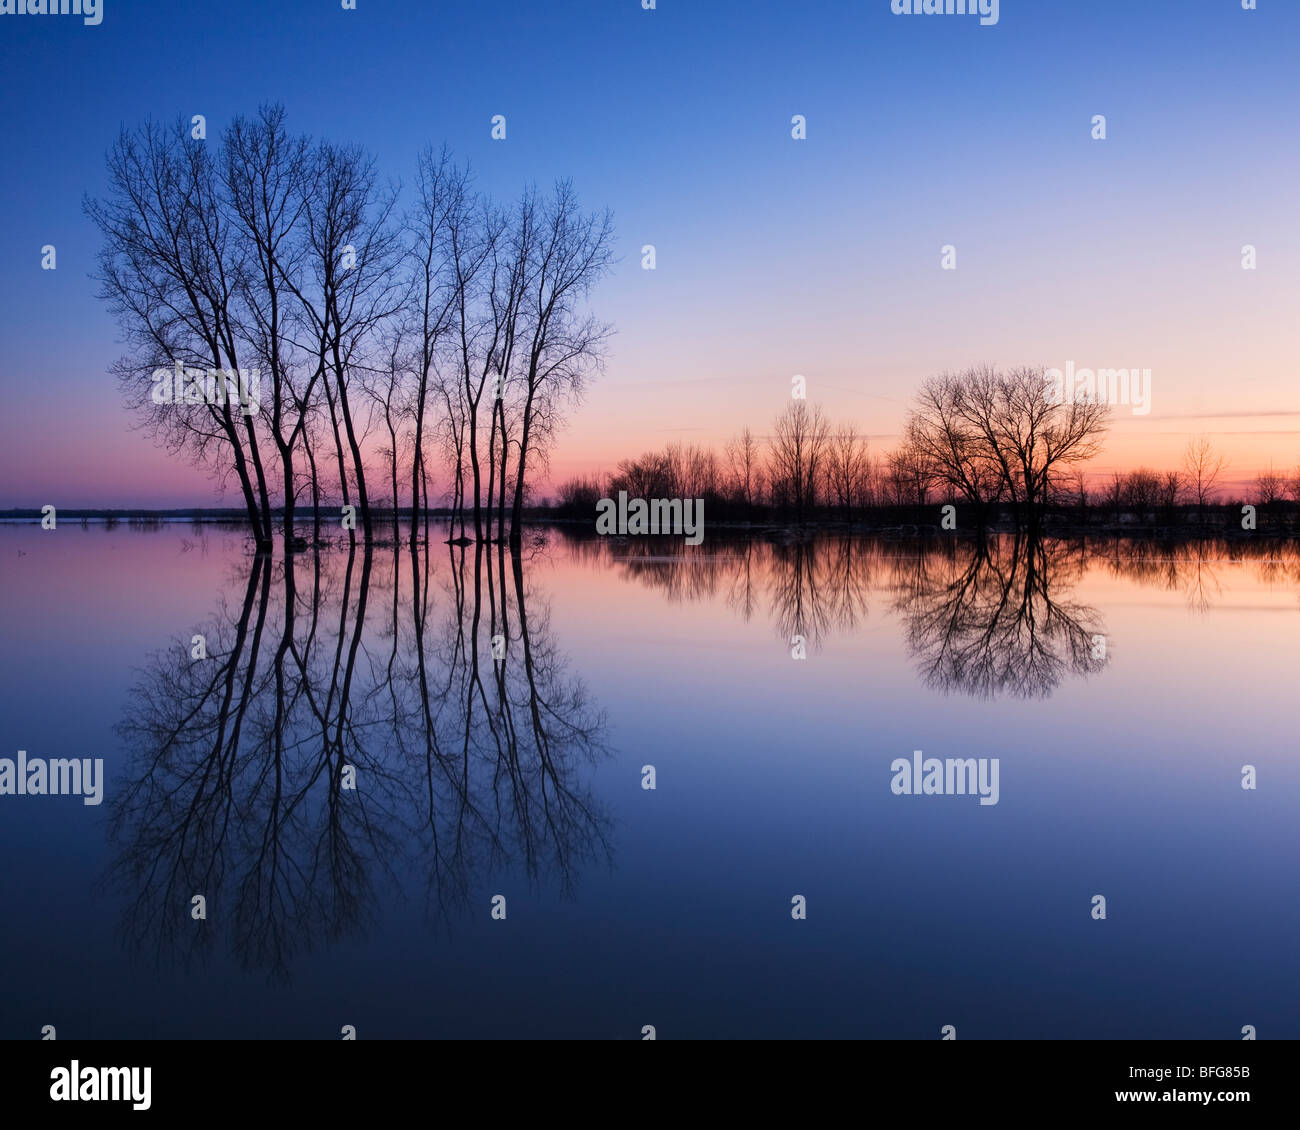 Trees are reflected in spring flood waters laying on the fields of rural Grand Bend, Ontario, Canada - Stock Image